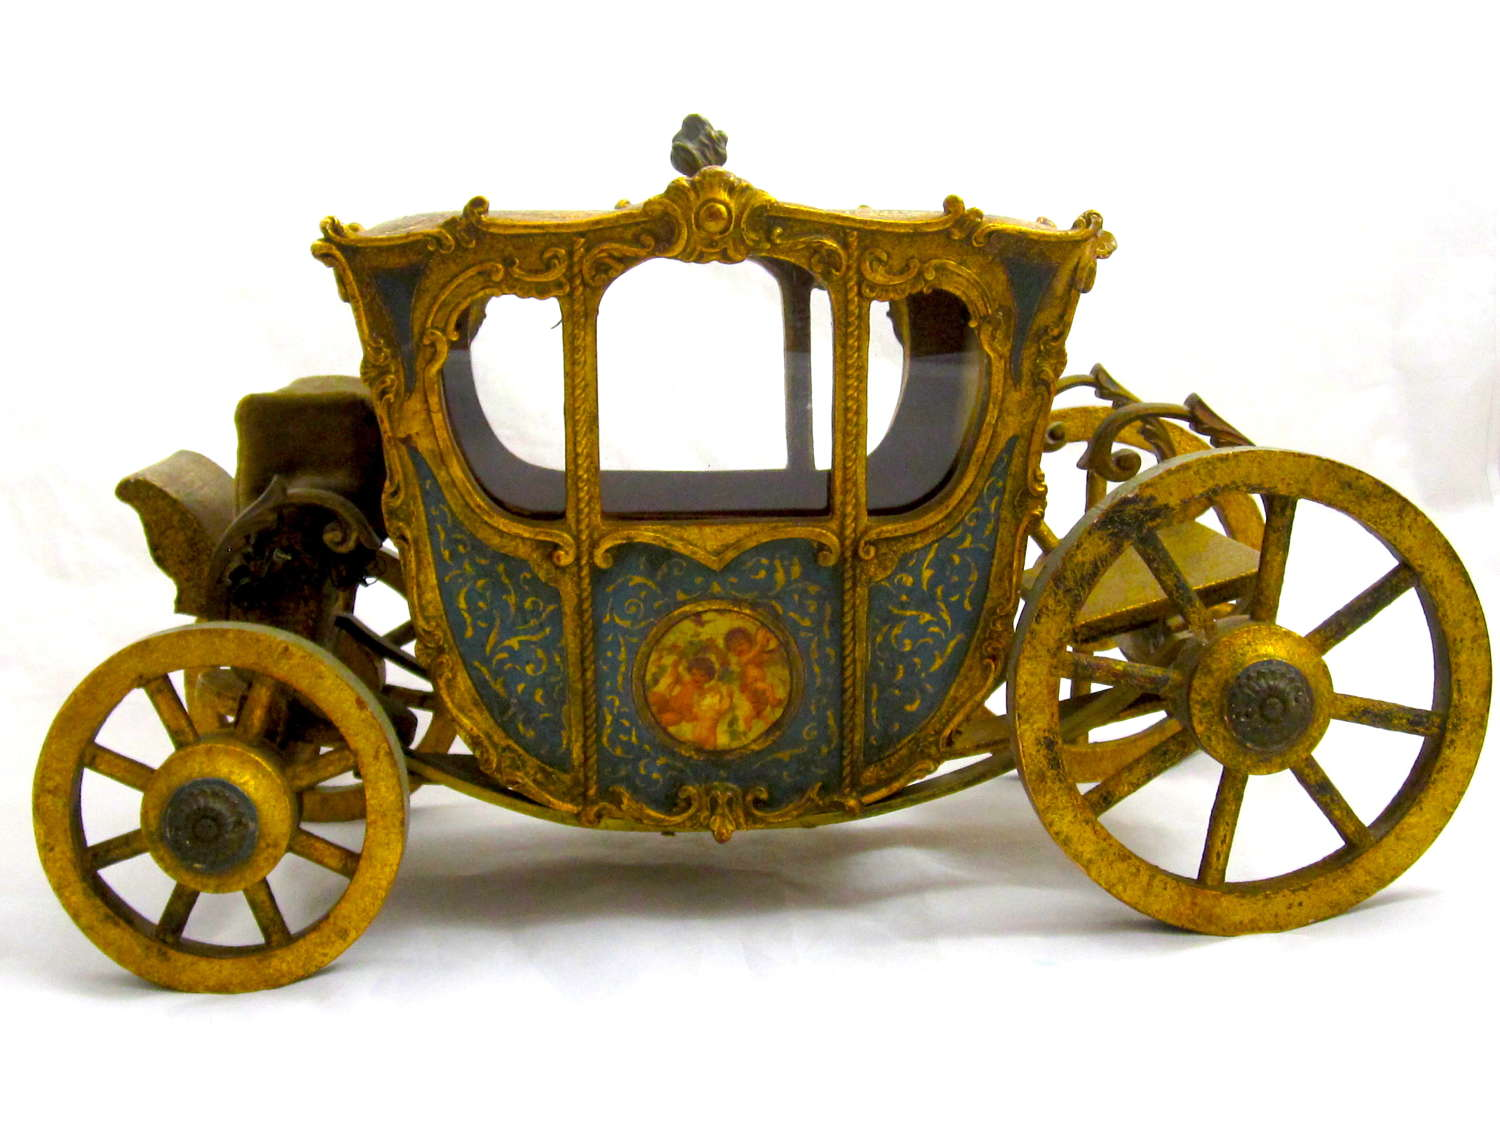 Rare and Beautiful Antique Marquise de Sevigne,Paris,Wooden Carriage